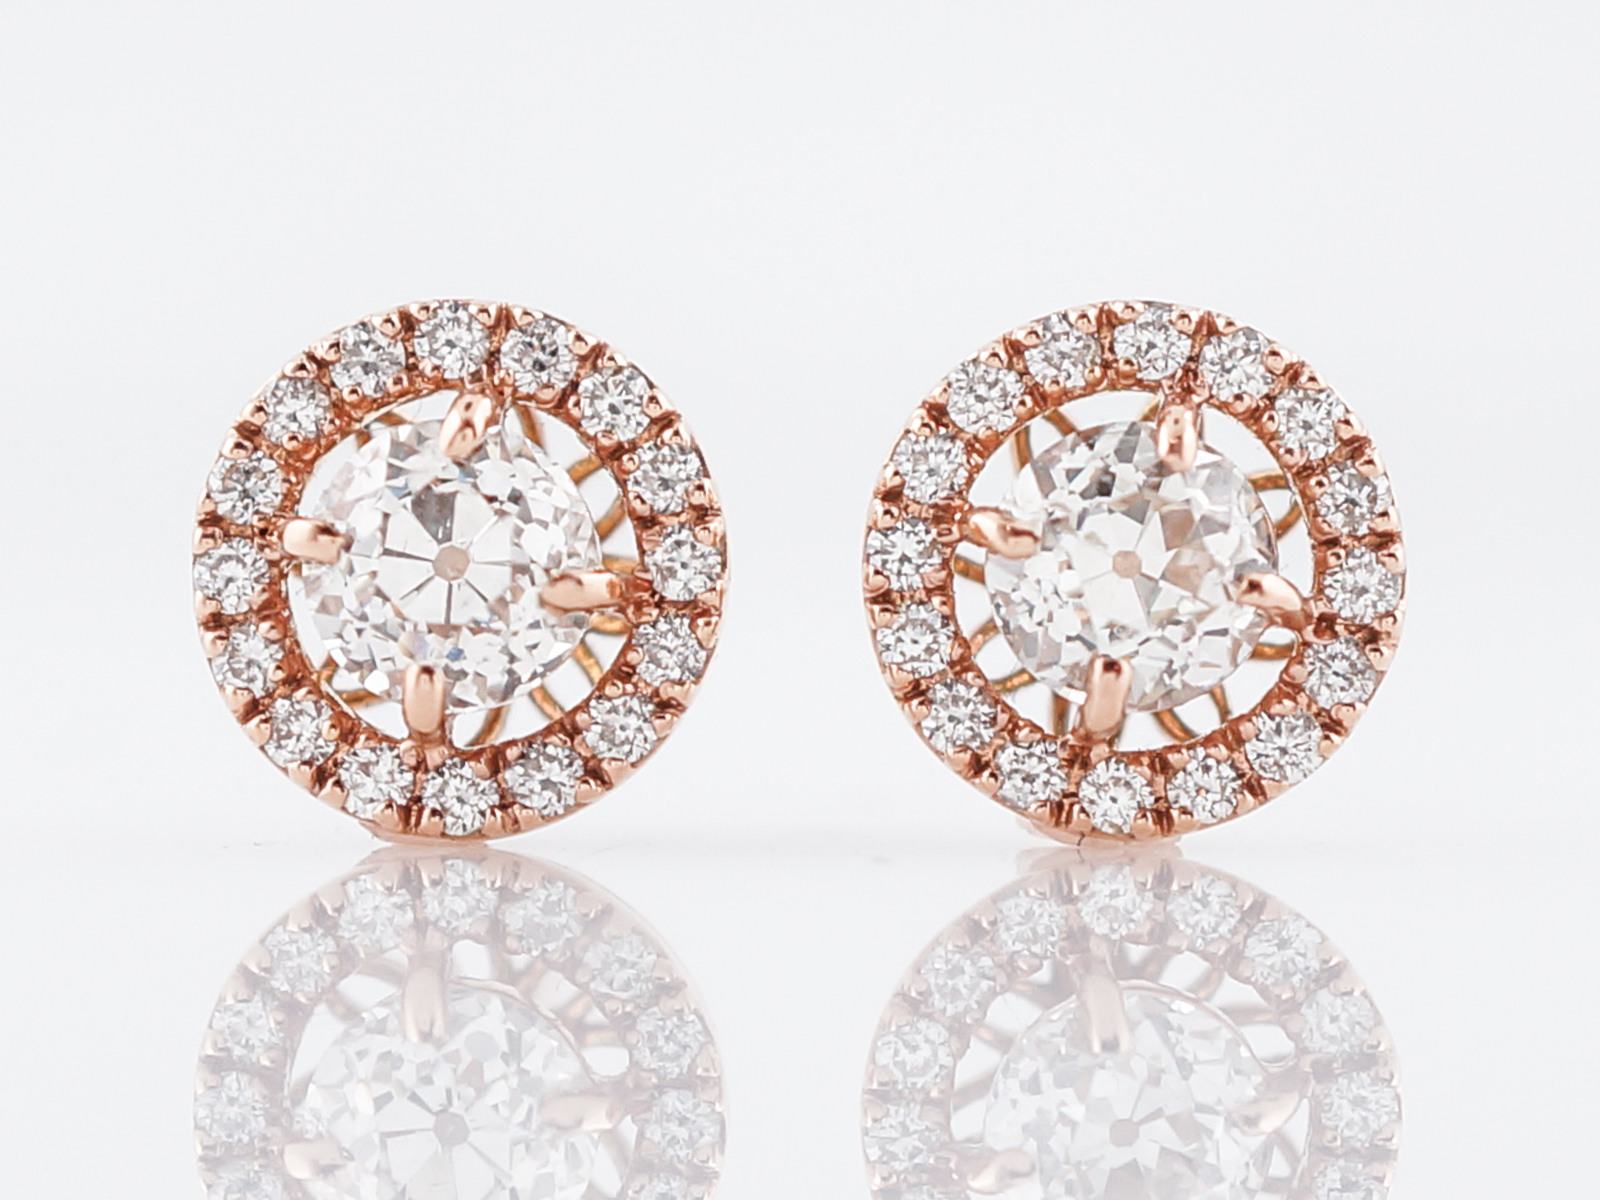 Halo Stud Earrings Modern 1.34 Old European Cut Diamonds in 14k Rose ... e445c815b2